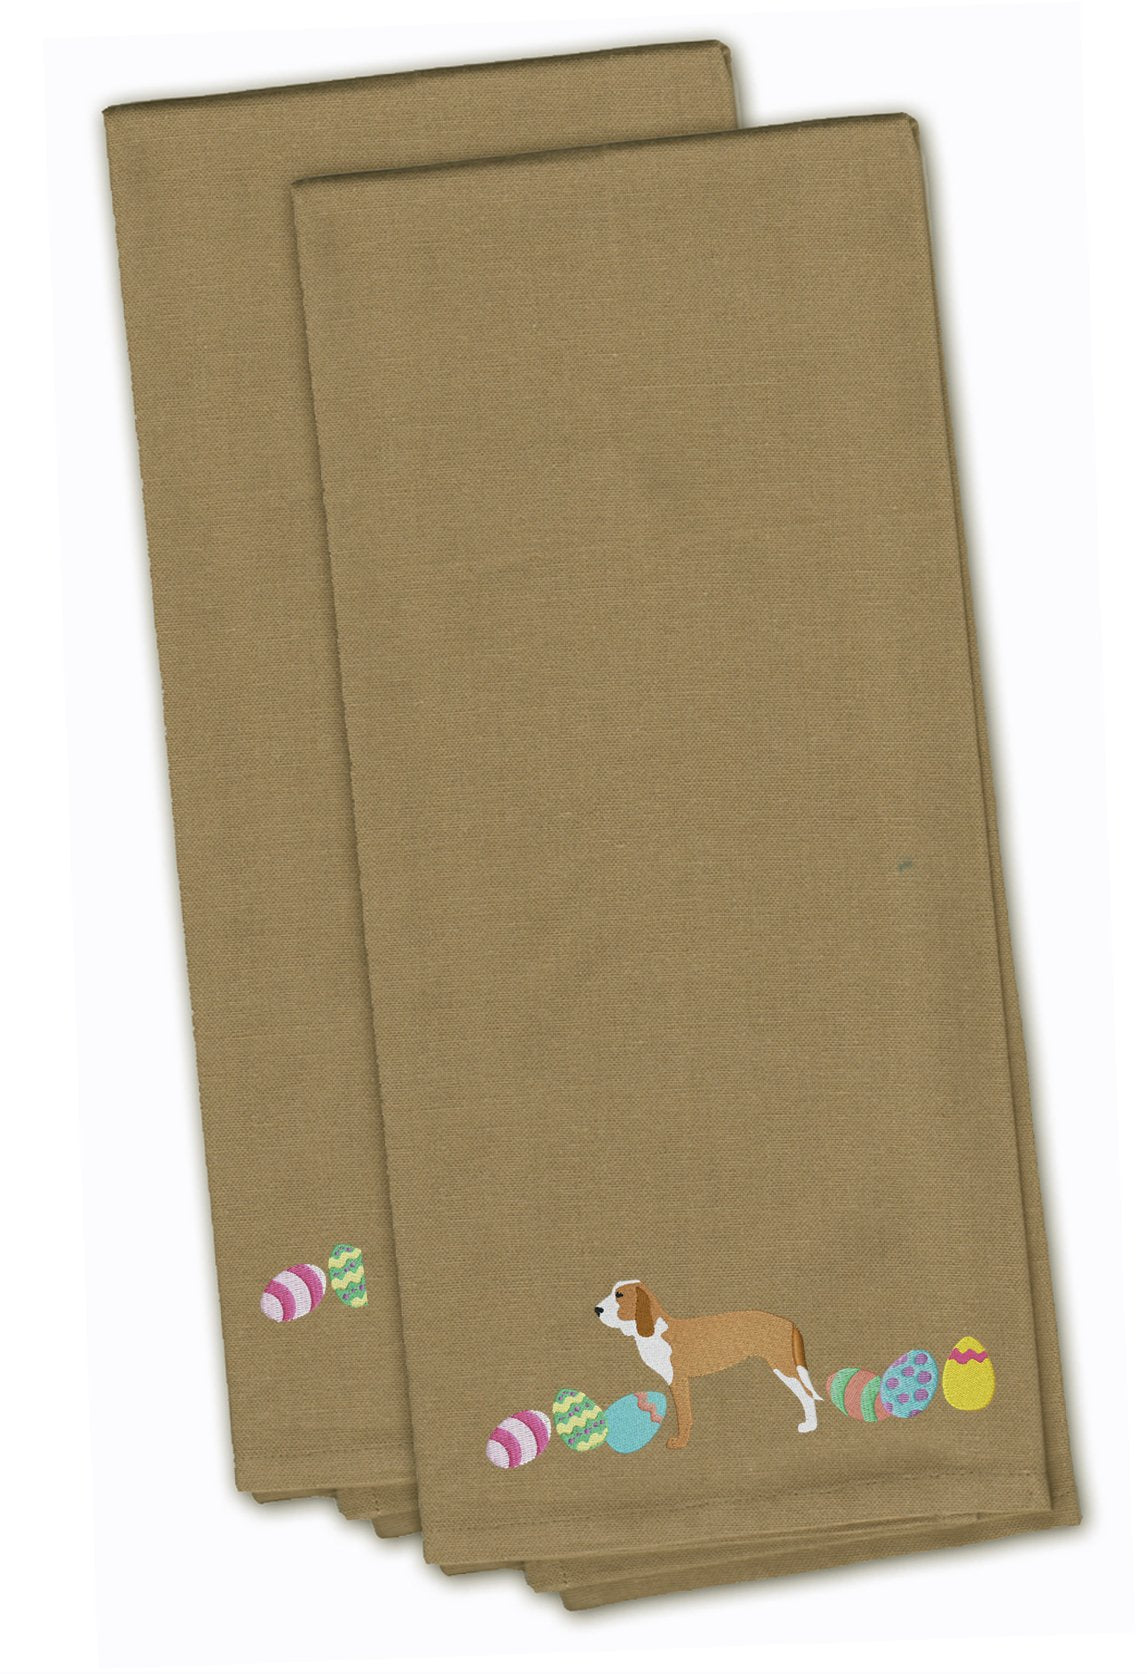 Sabueso Espanol Easter Tan Embroidered Kitchen Towel Set of 2 CK1688TNTWE by Caroline's Treasures